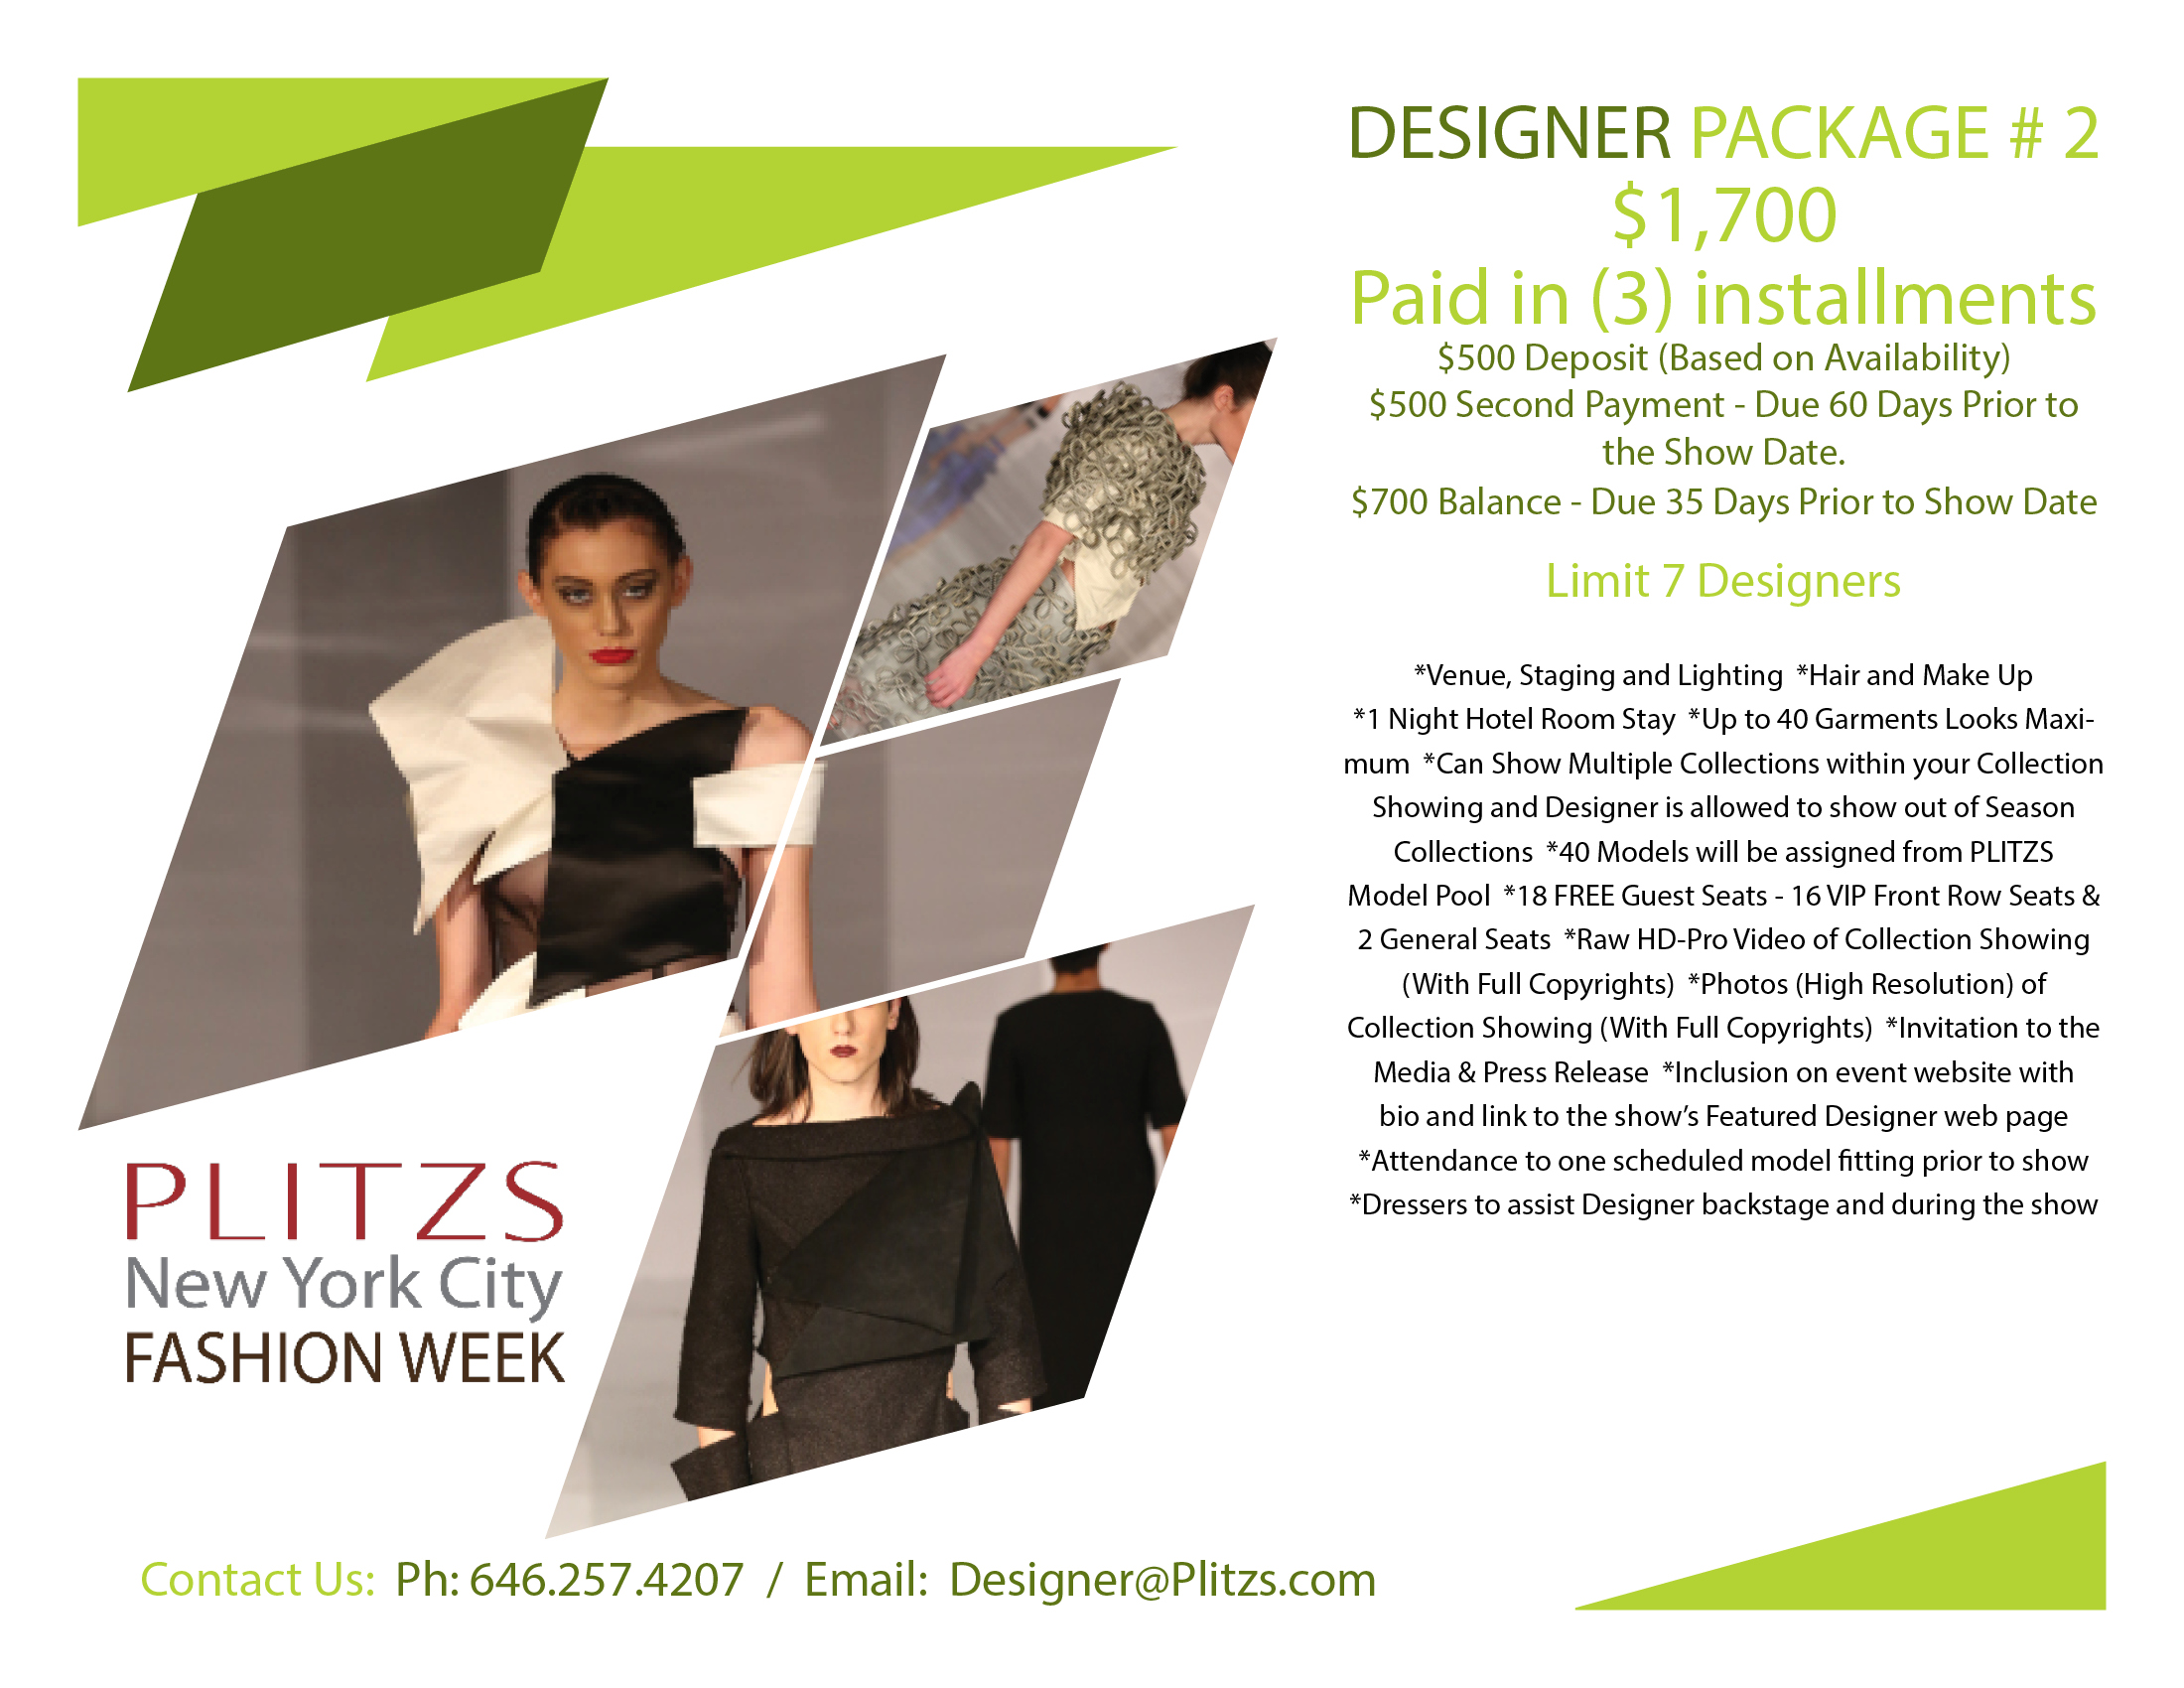 Designer Package #2